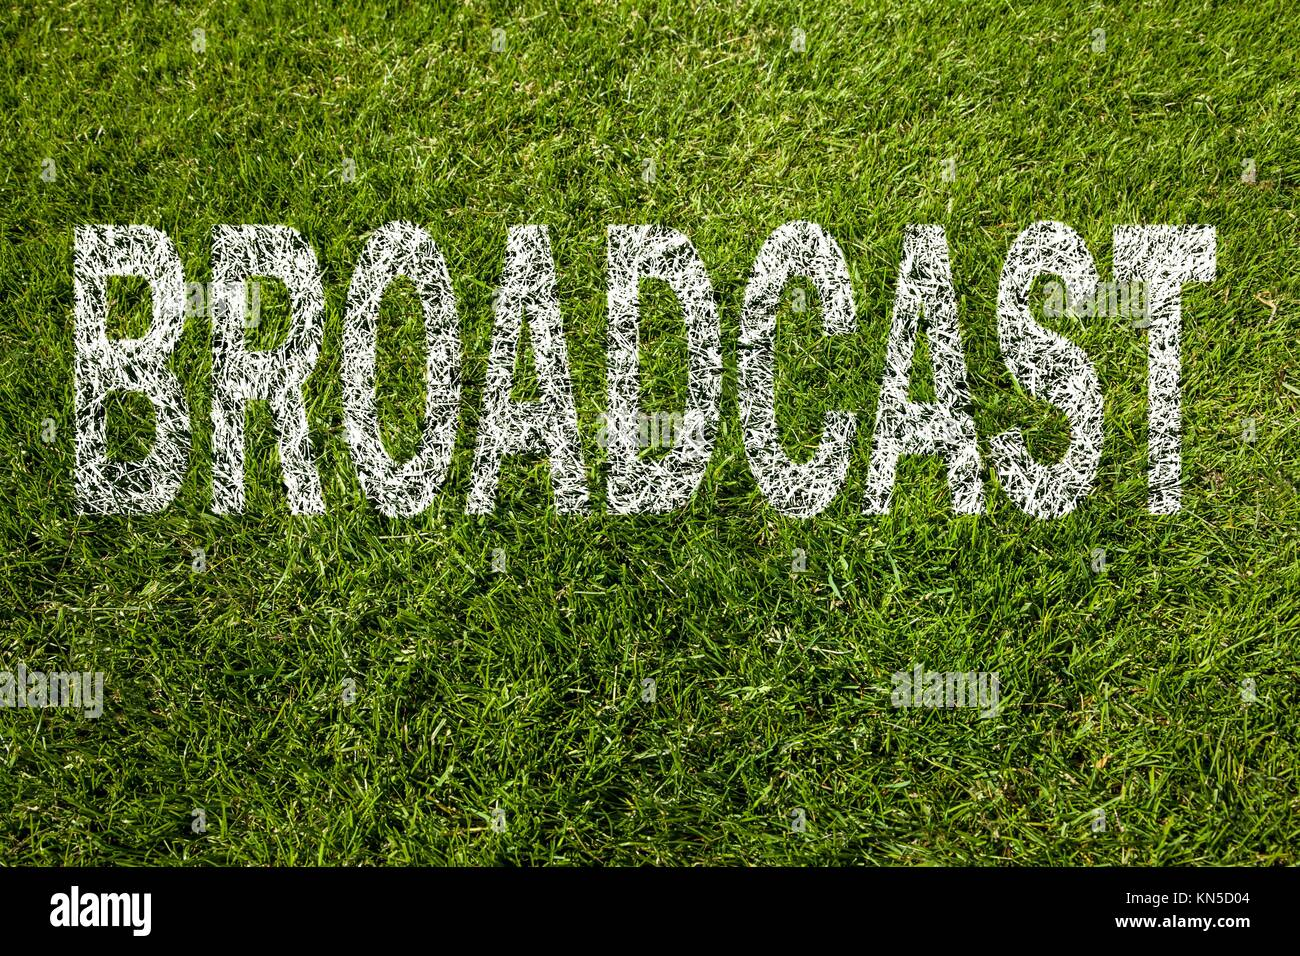 broadcast written on a green meadow. - Stock Image